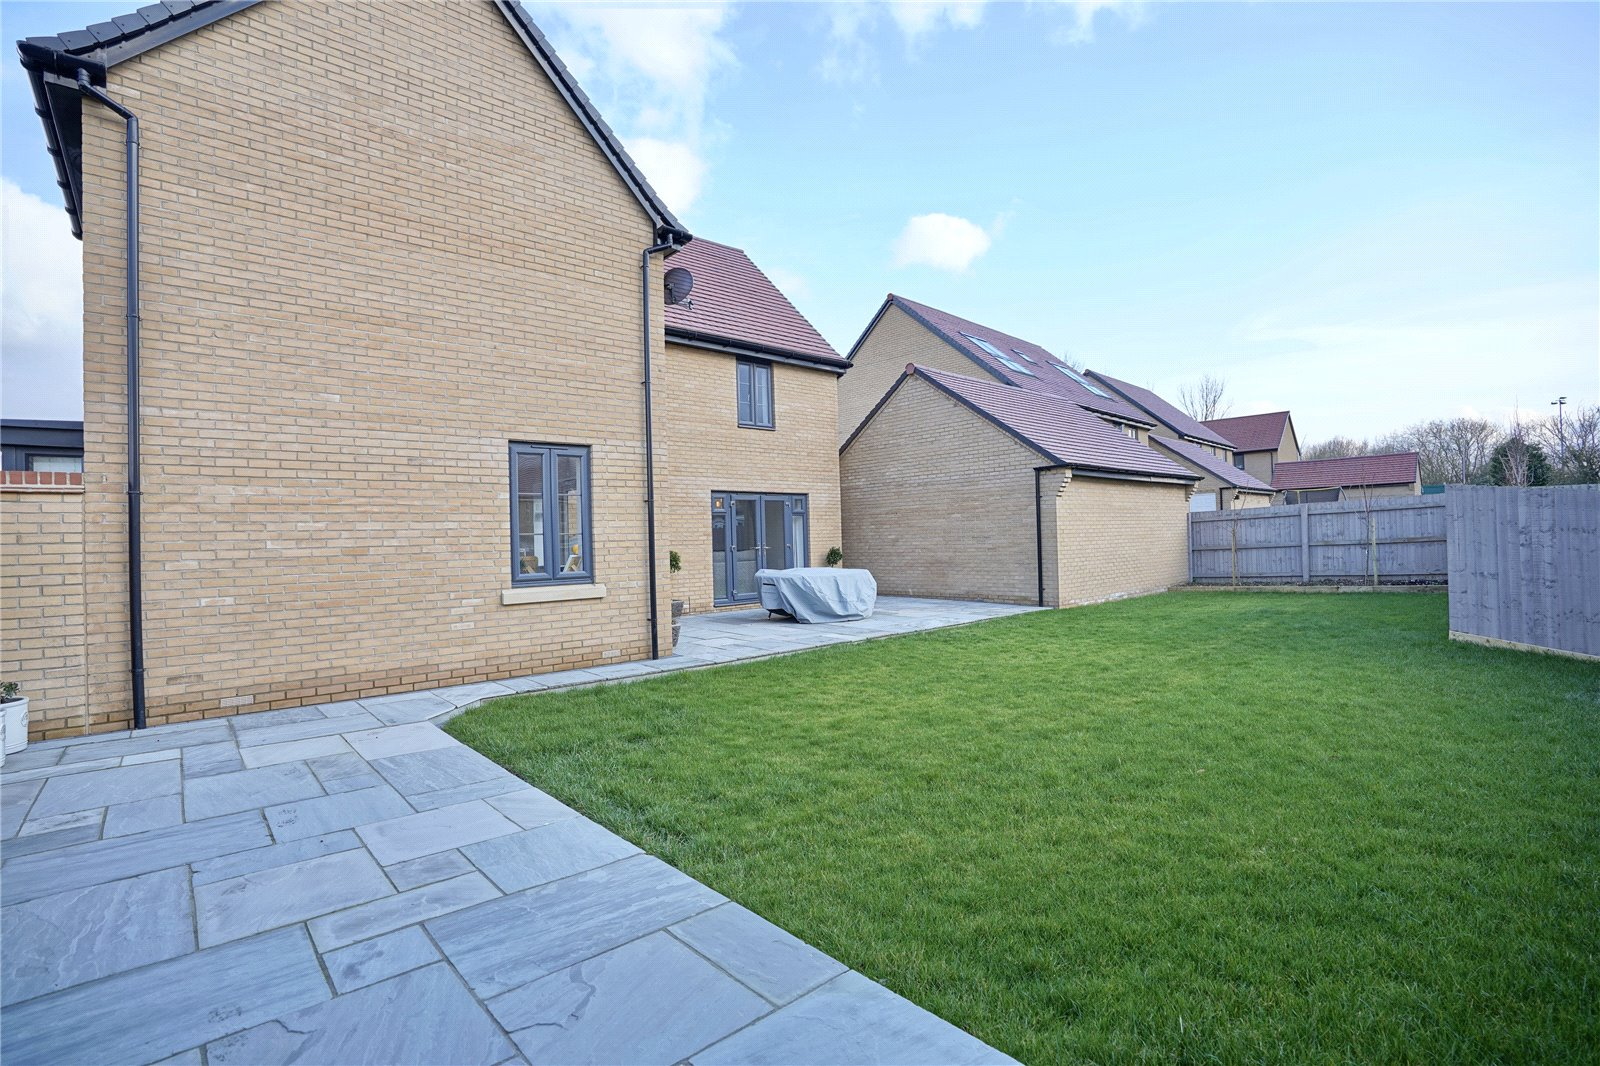 5 bed house for sale in Godmanchester, PE29 2NG  - Property Image 11